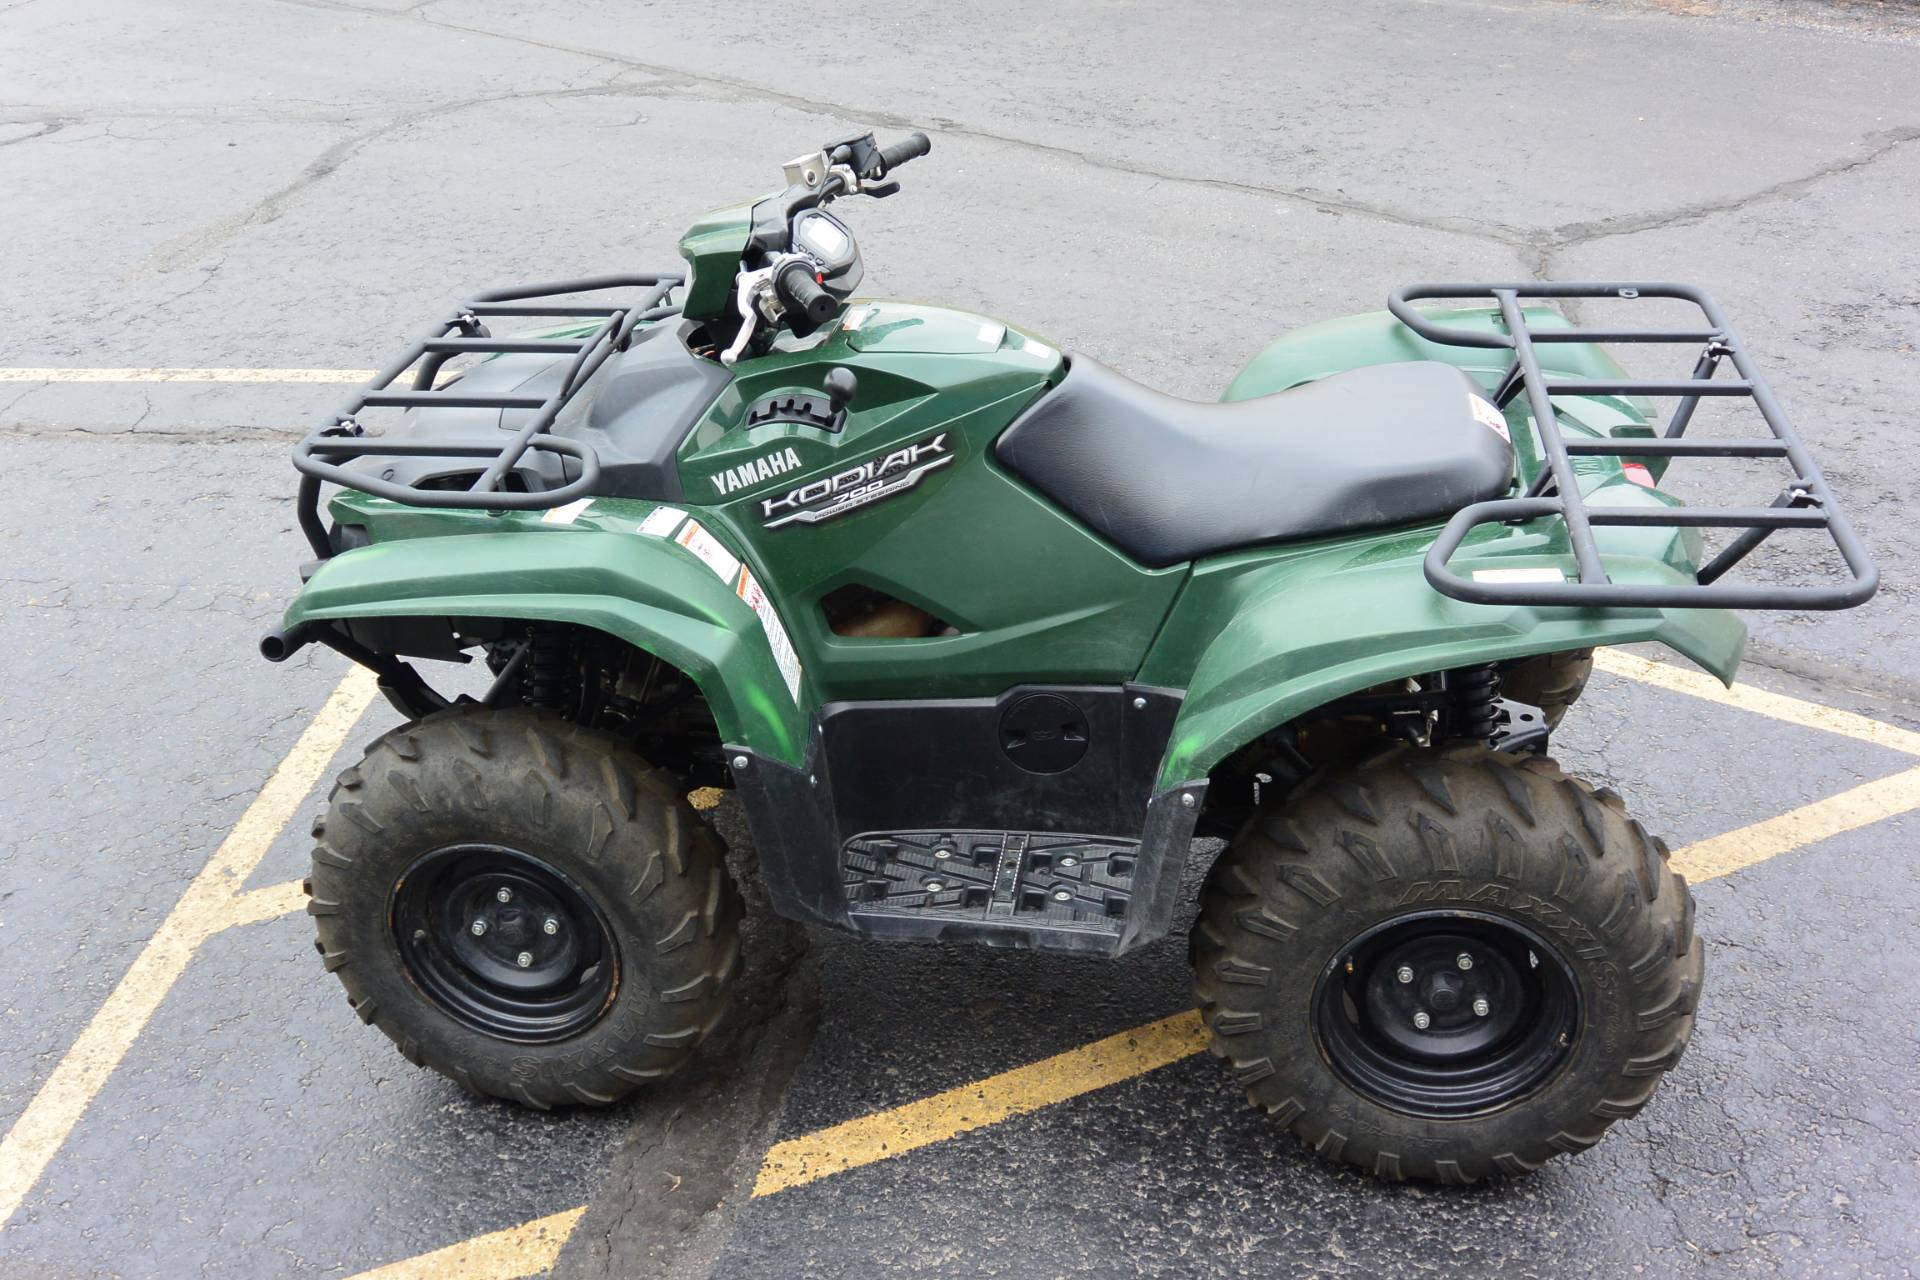 2016 Yamaha Kodiak in Denver, Colorado